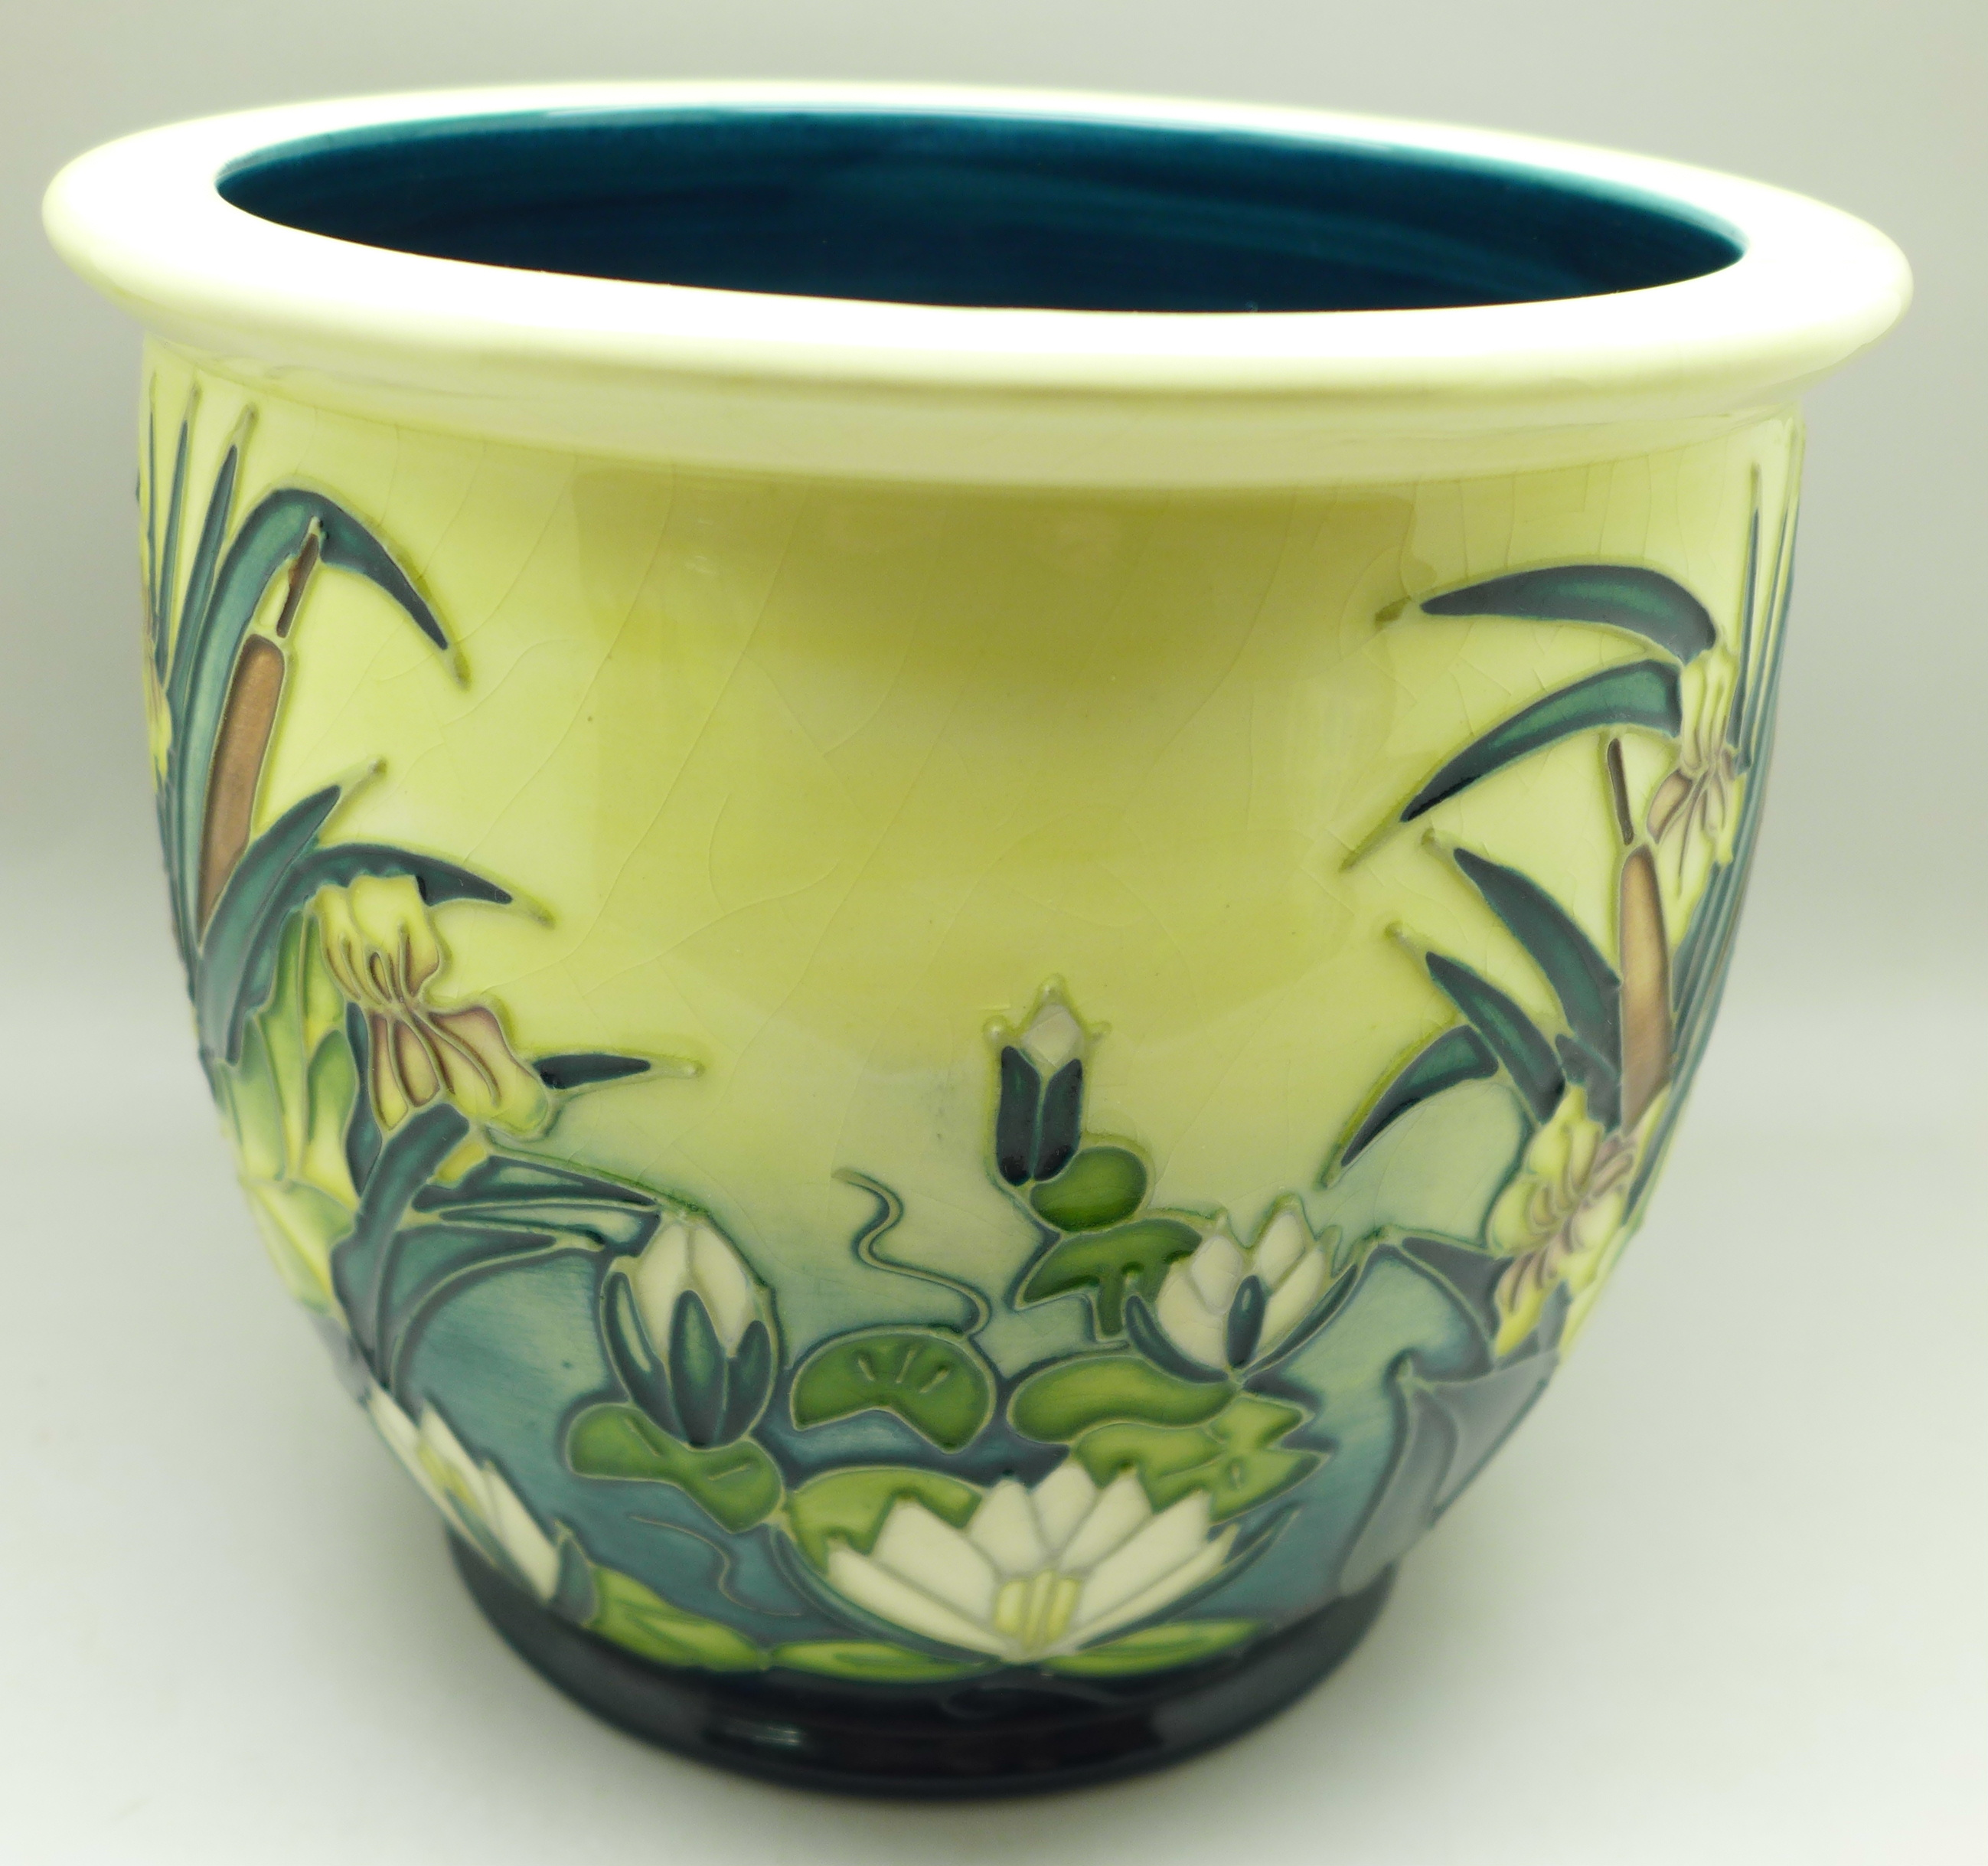 A Moorcroft bullrush planter, AB, 1995, 16.5cm, crazed - Image 3 of 6